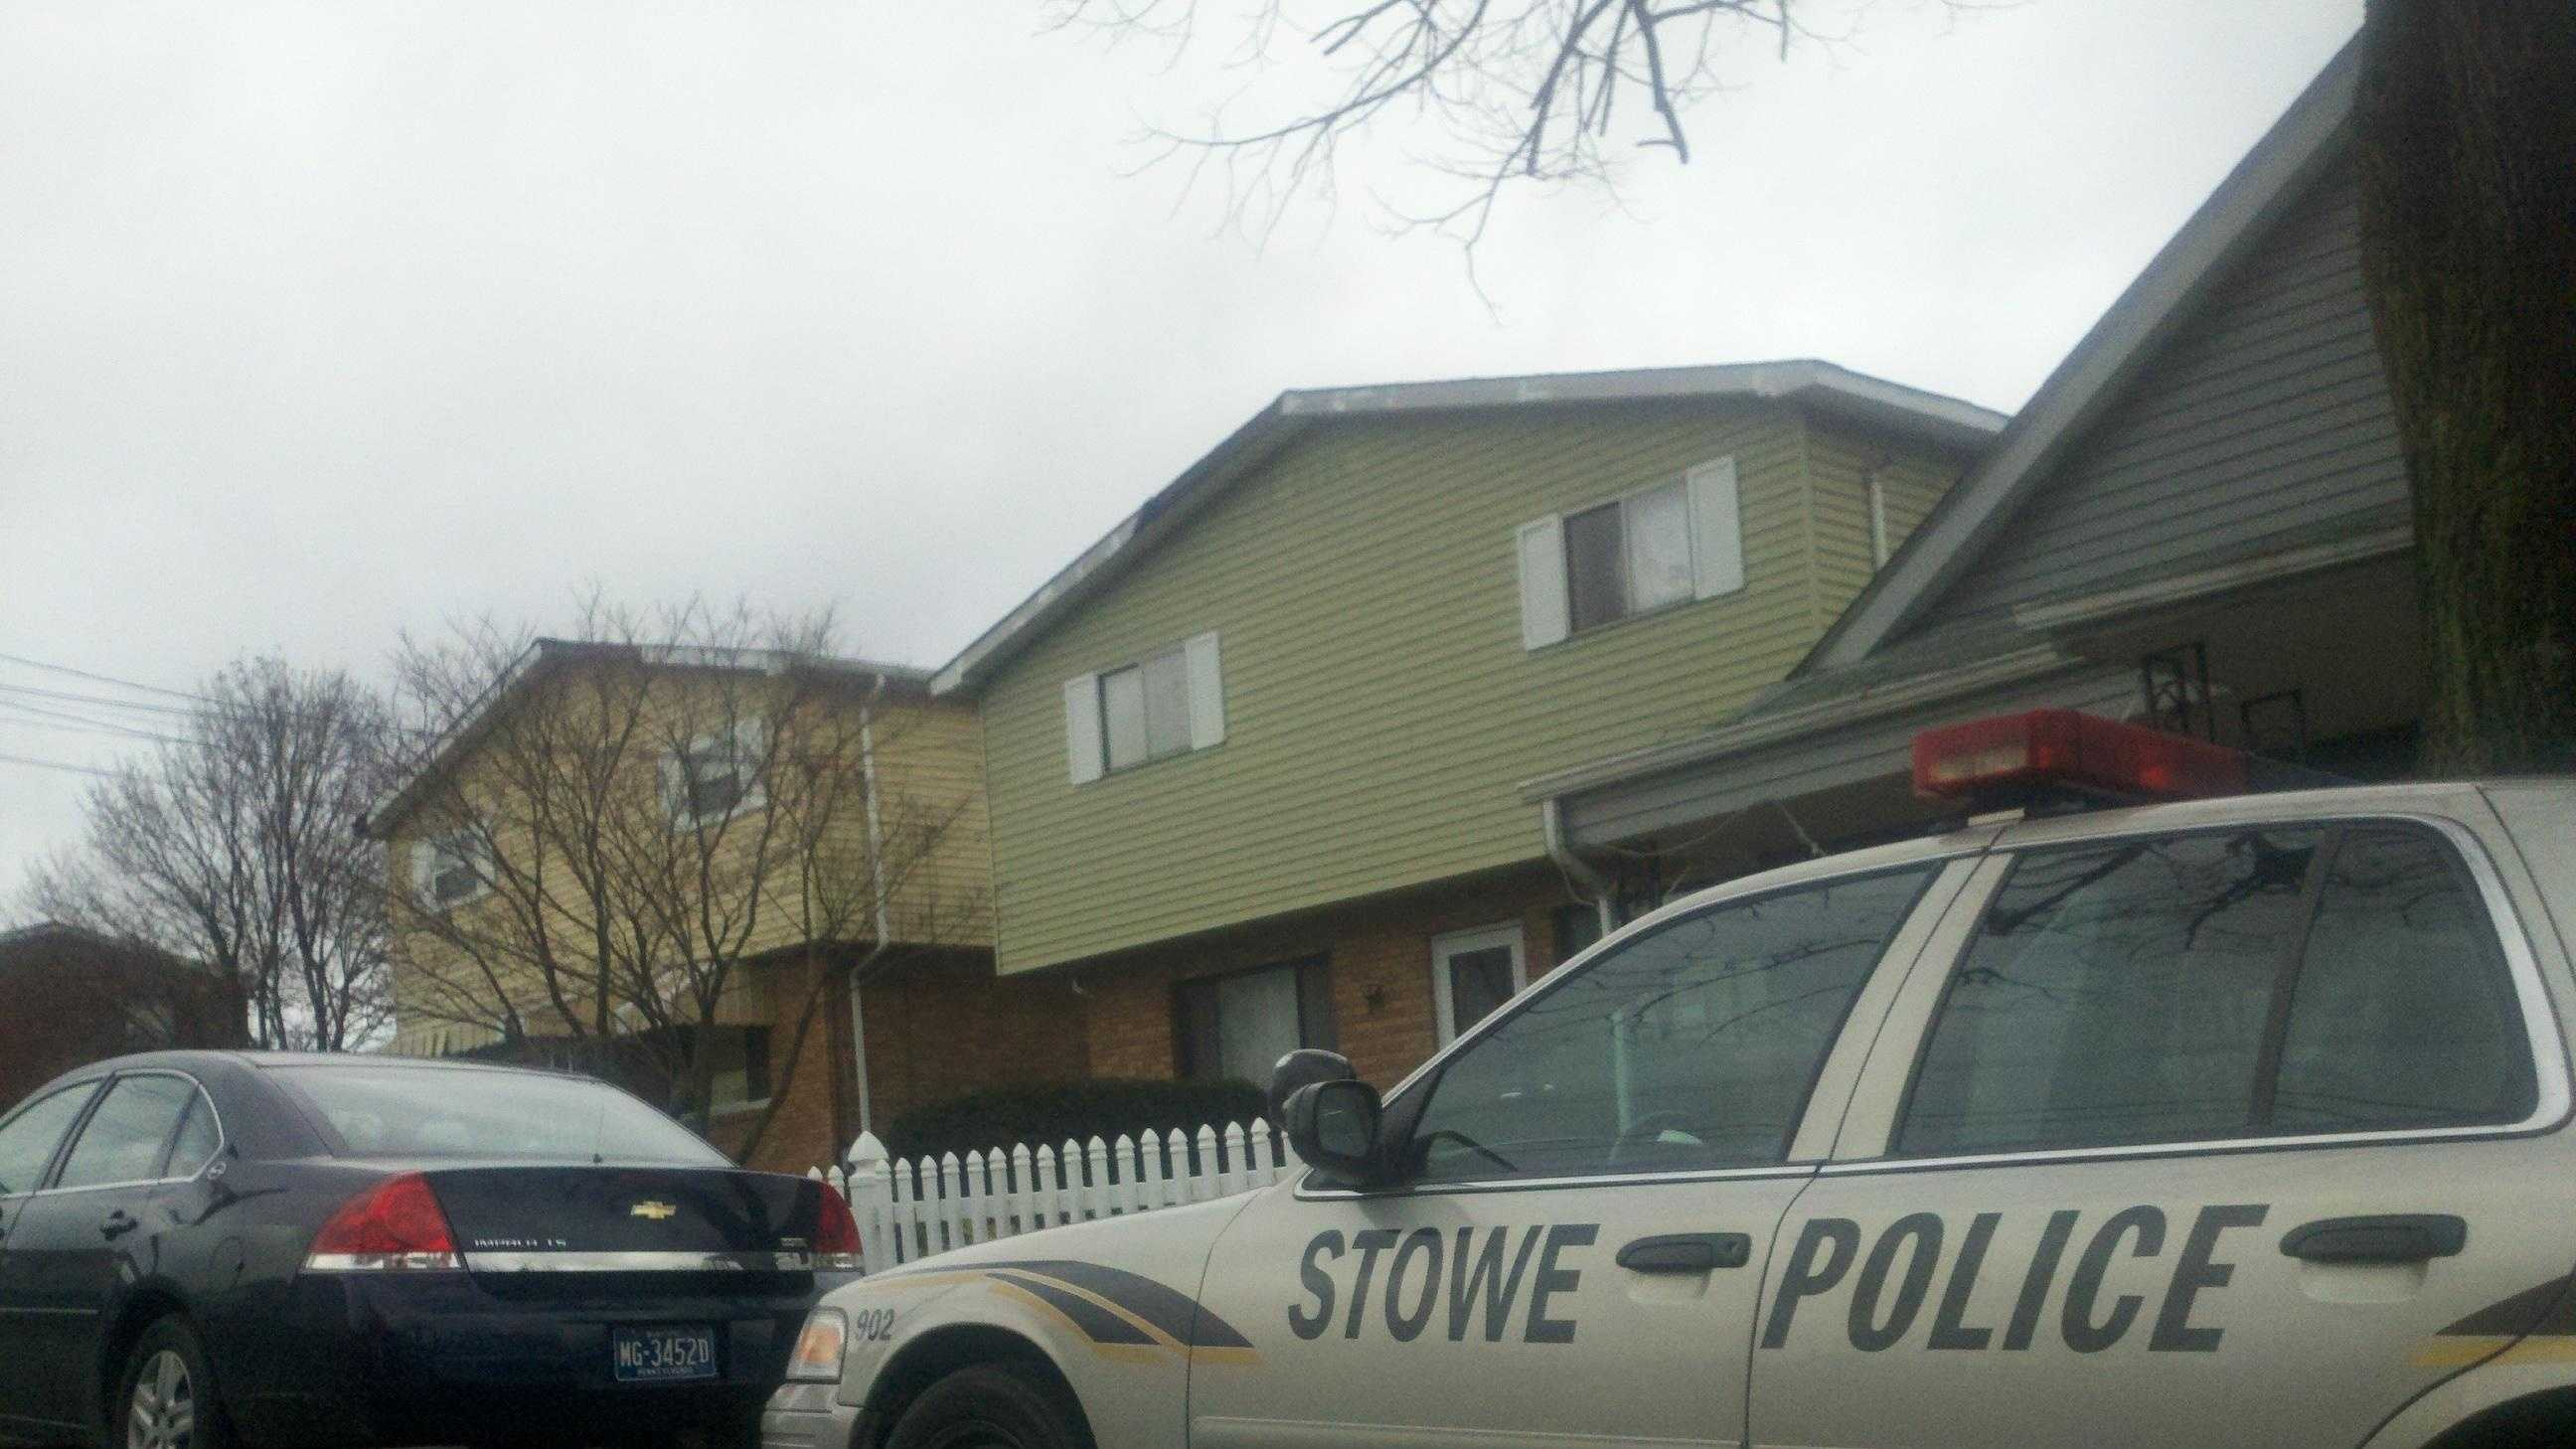 Stowe Township police car